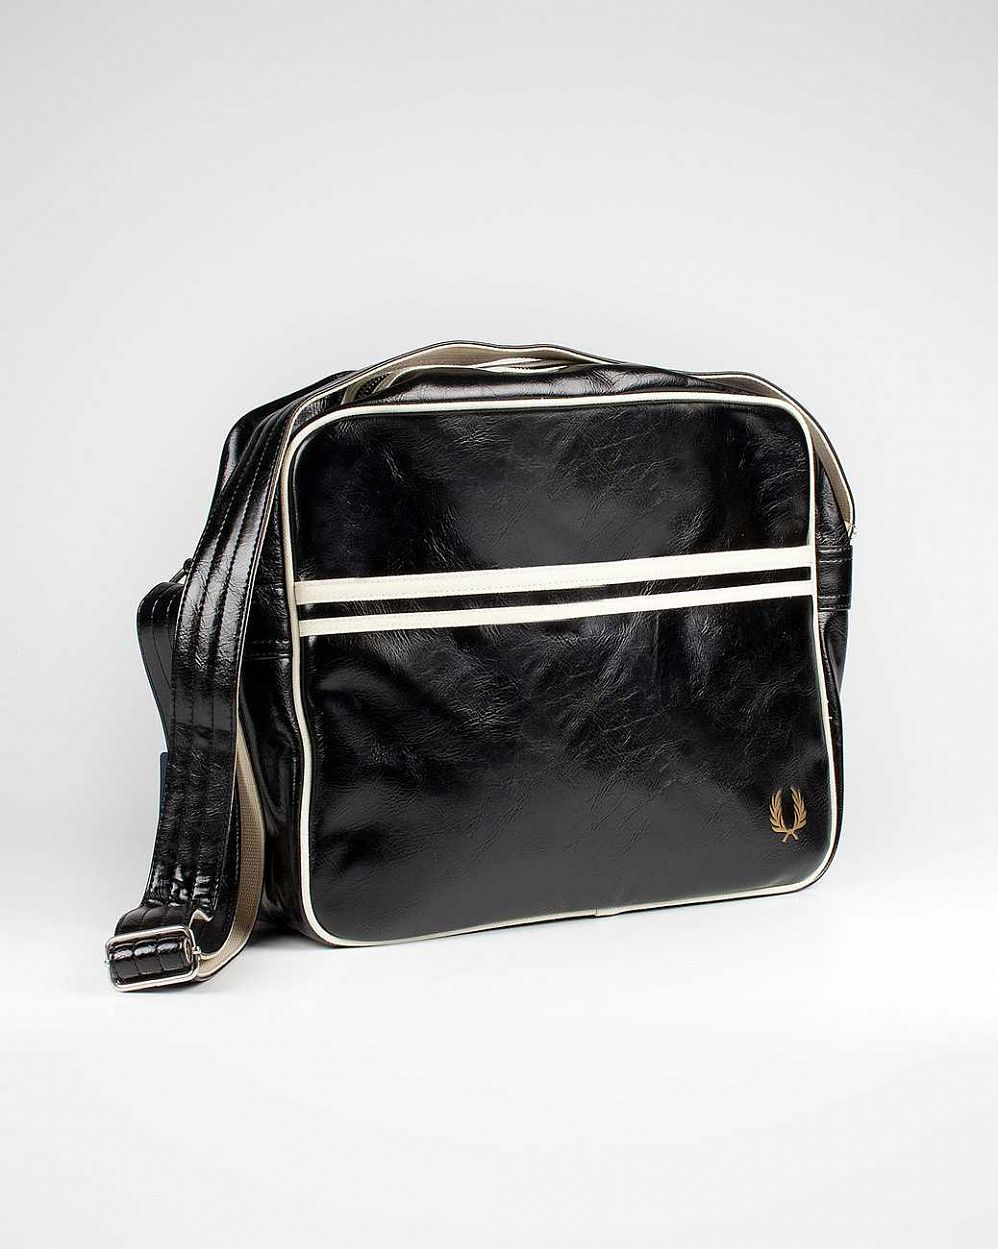 купить Сумка Fred Perry L1180 Classic Shoulder Bag Black в Москве